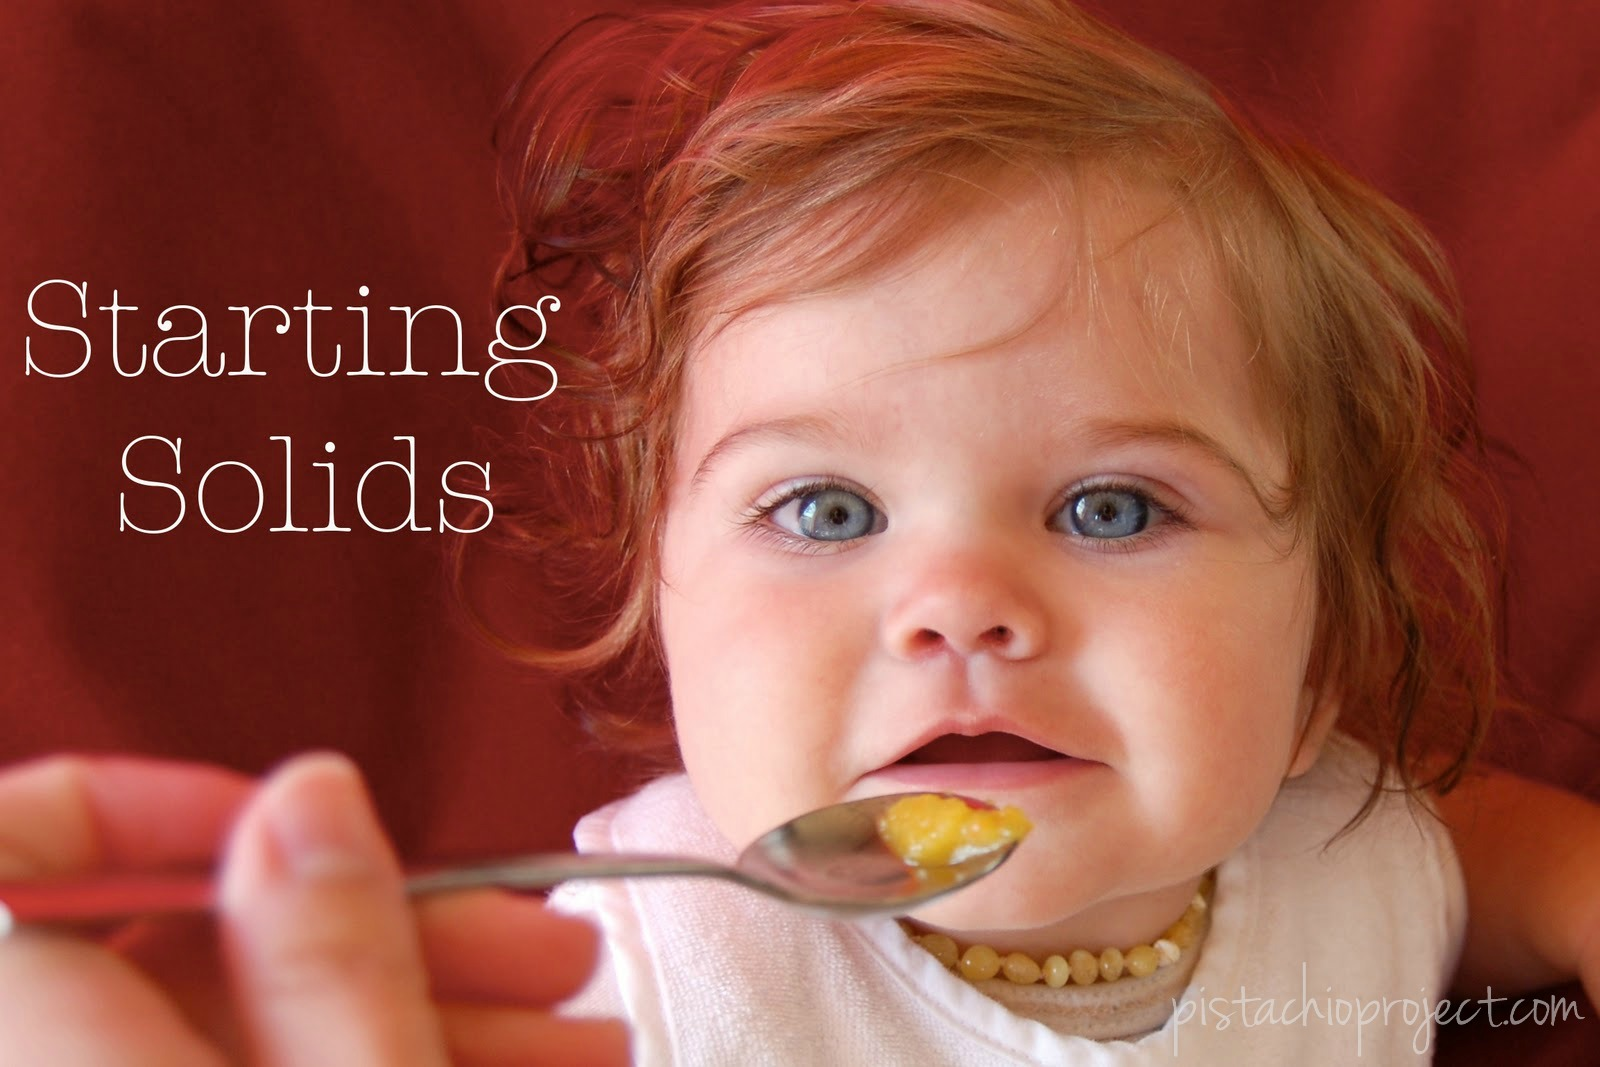 Starting Solids: When Should You Start Solids